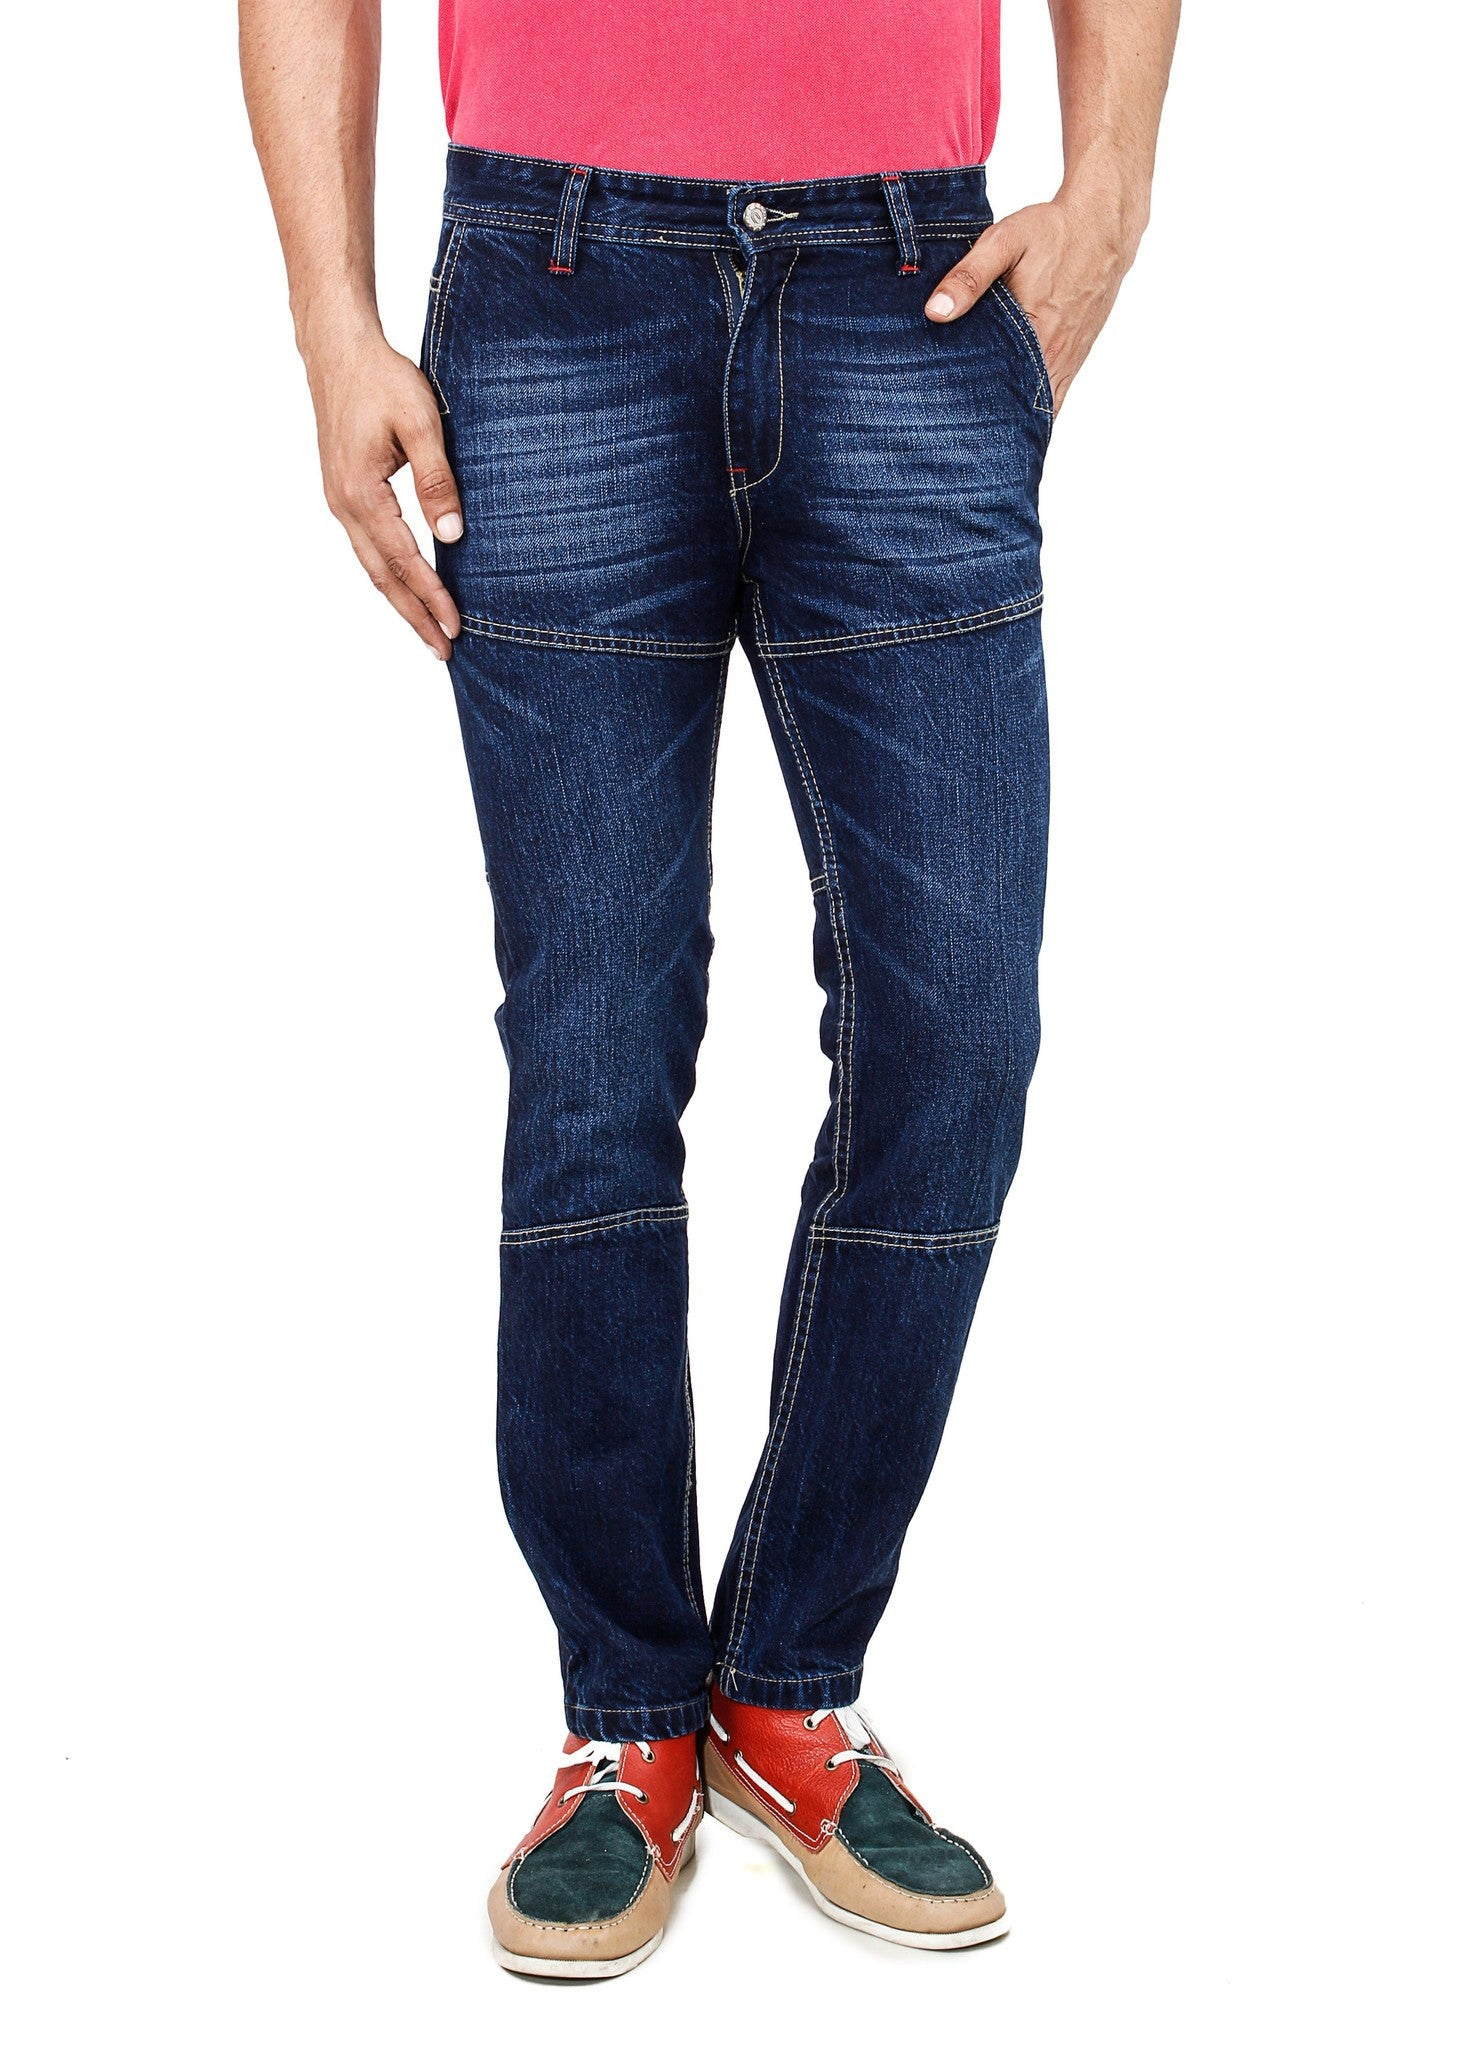 Graded Blue Jeans front view